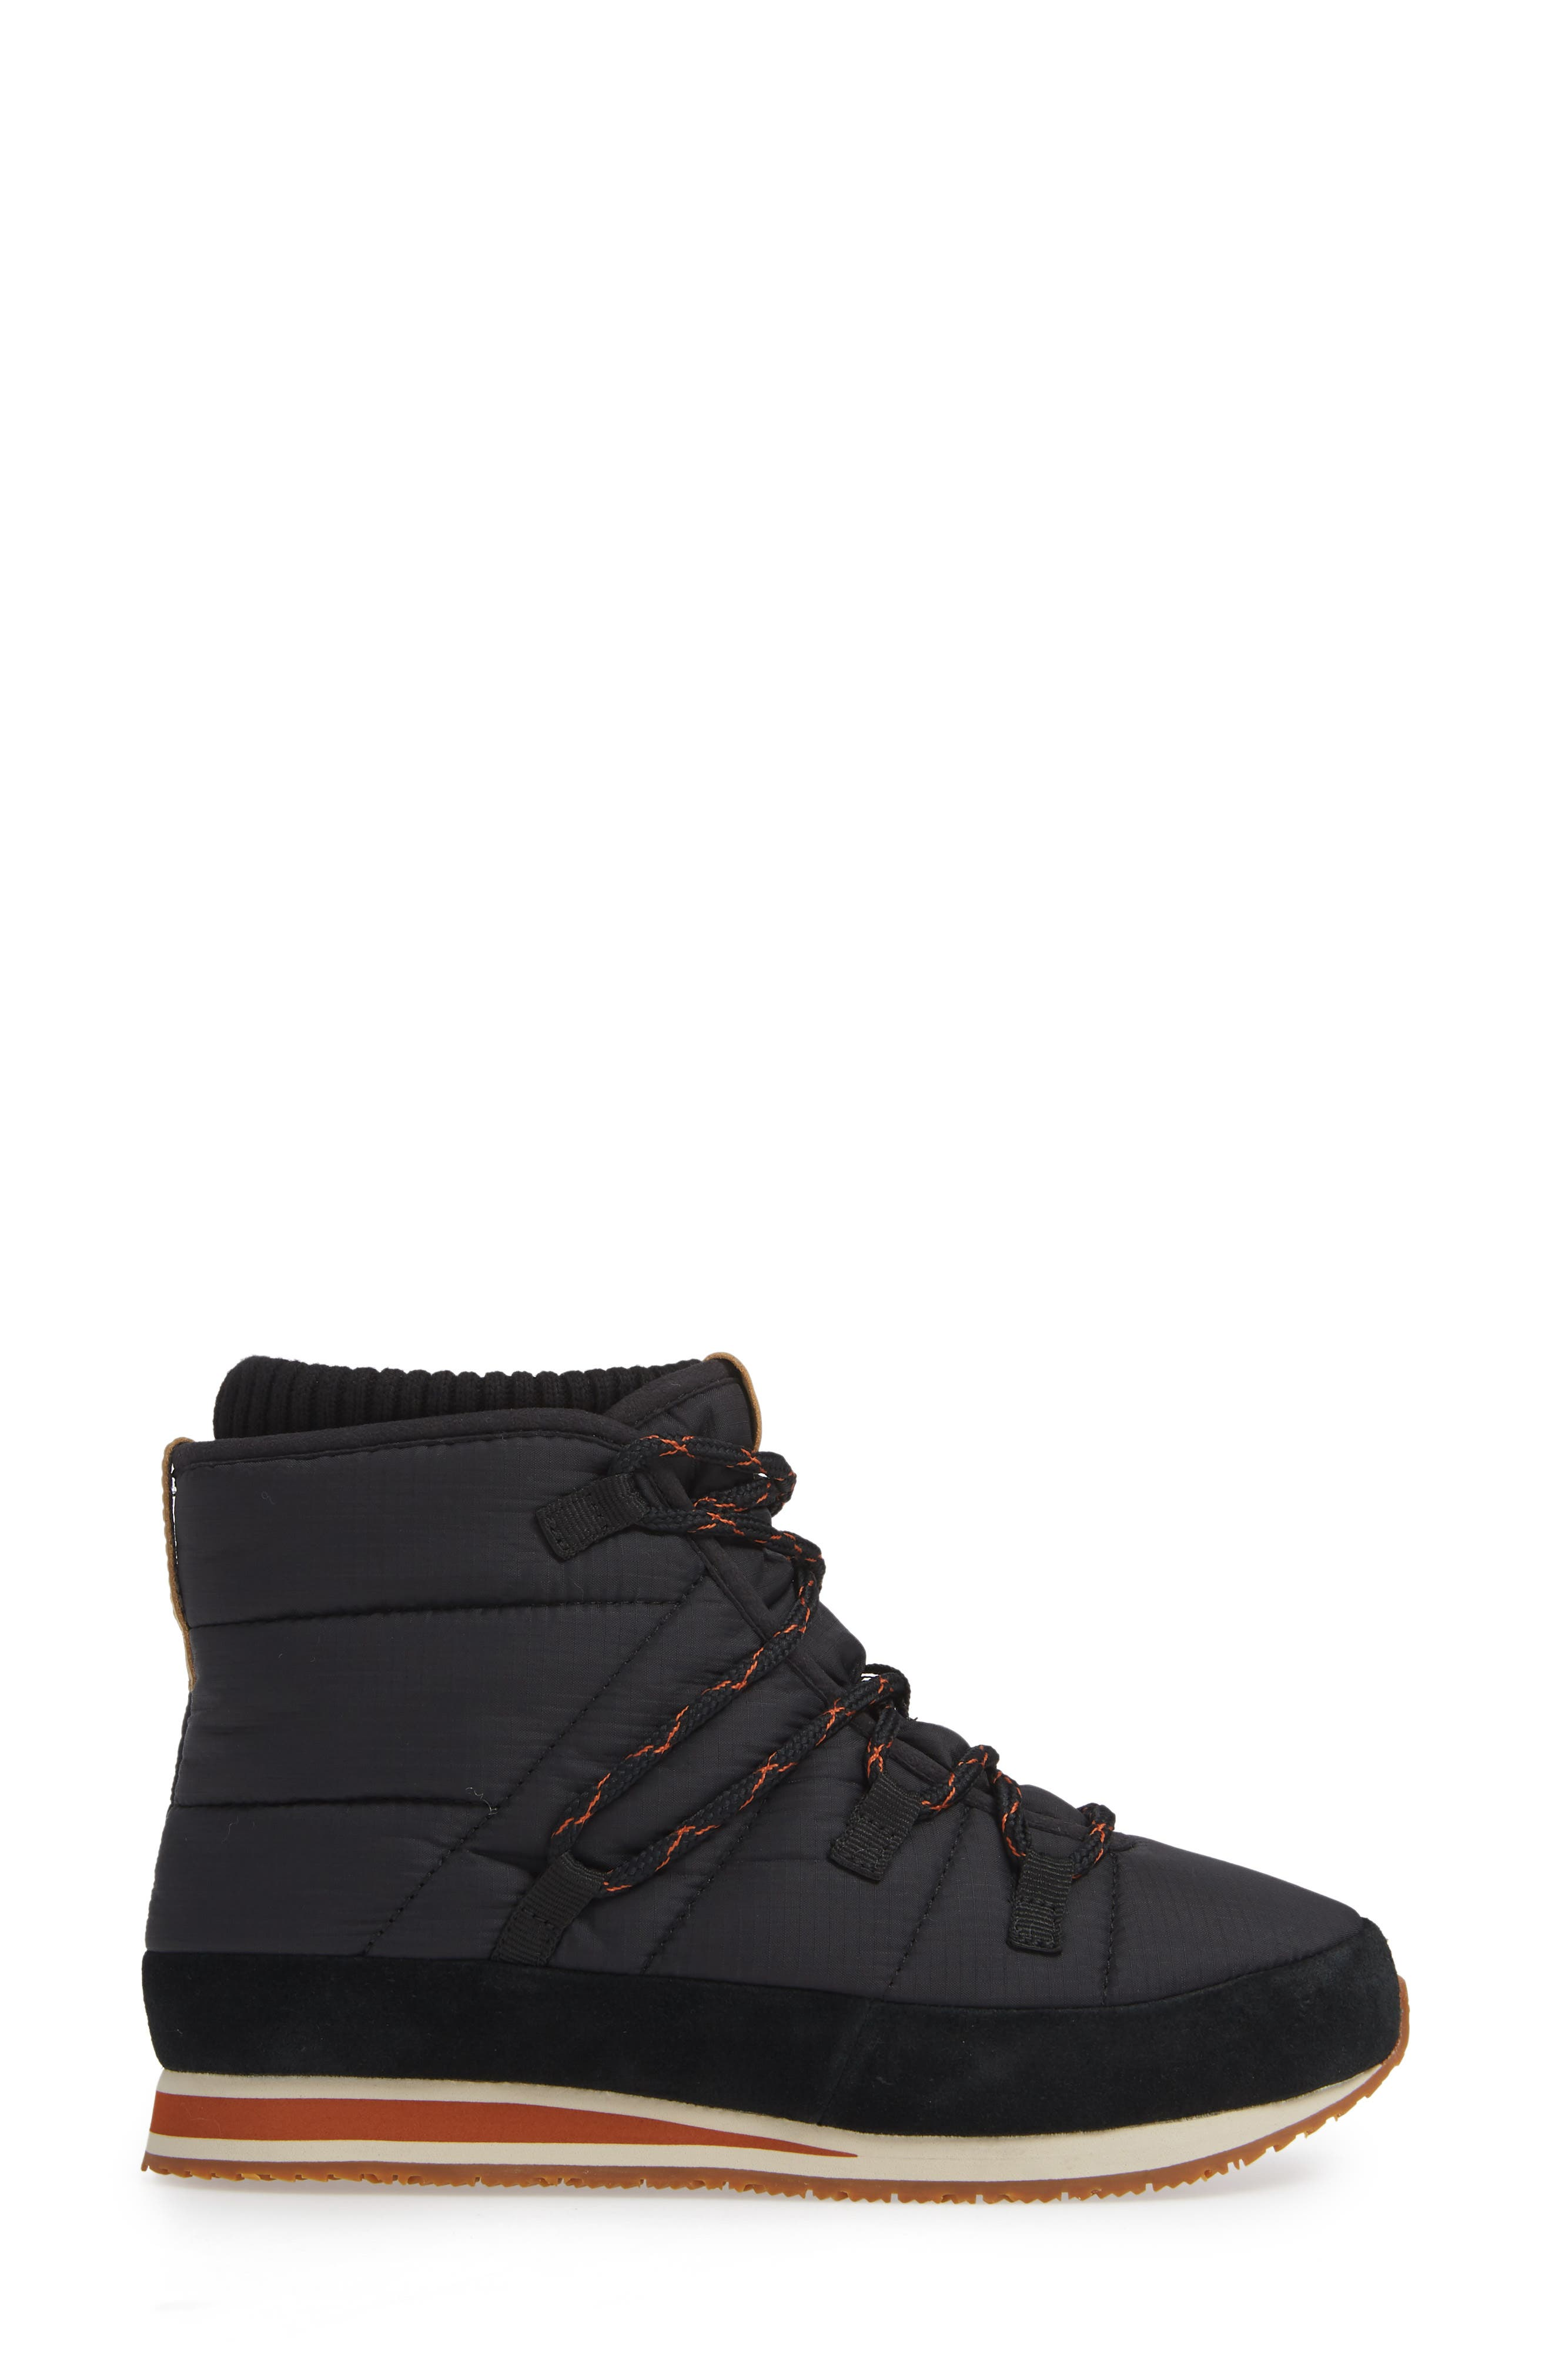 TEVA,                             Ember Lace-Up Winter Bootie,                             Alternate thumbnail 3, color,                             BLACK FABRIC